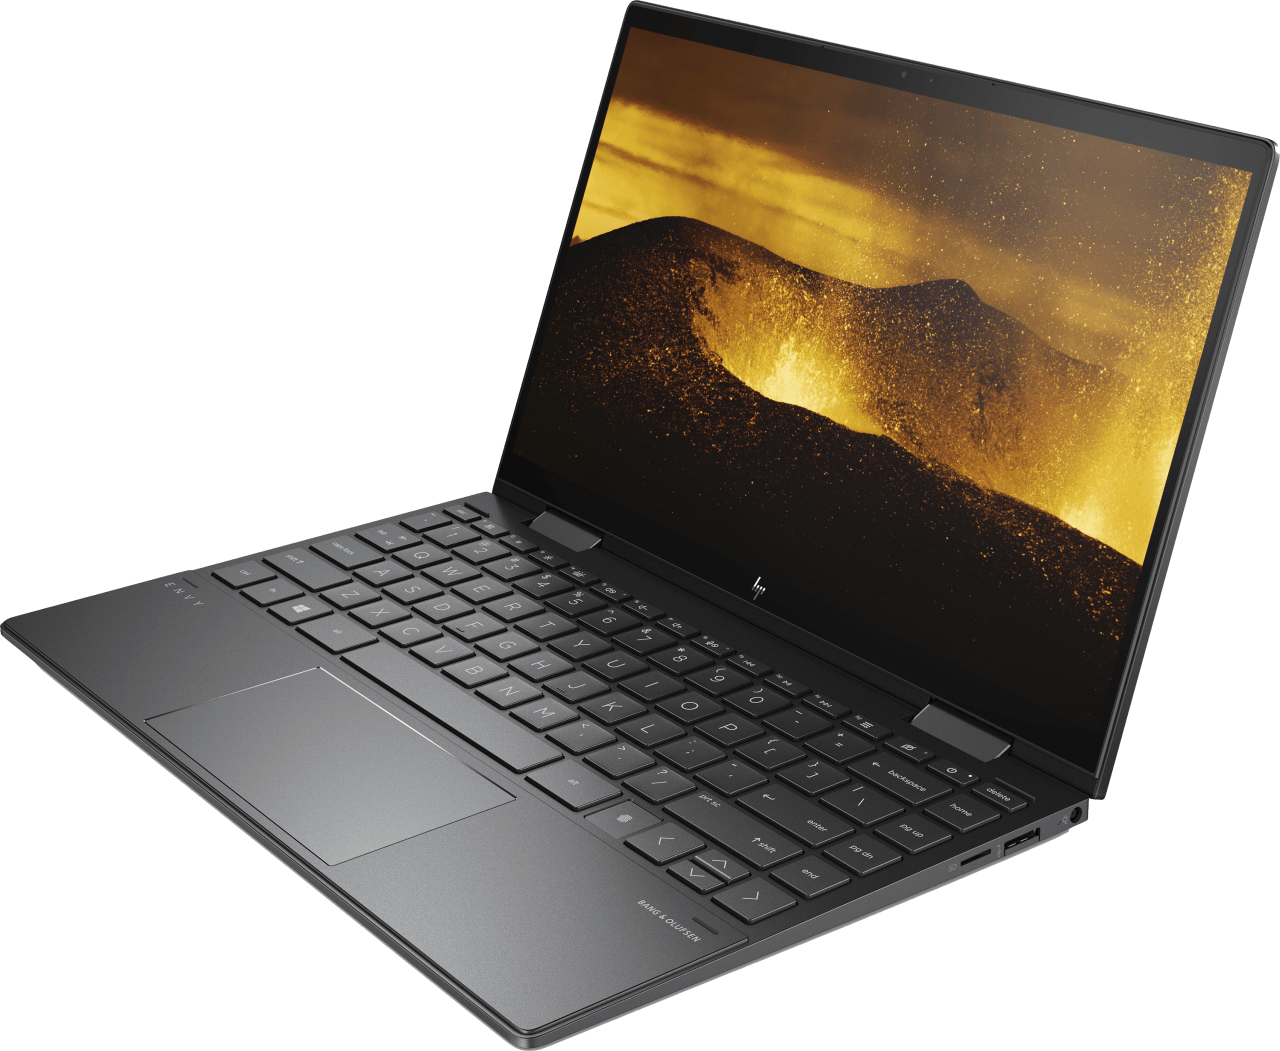 Nightfall Black HP Envy x360 13-ay0285ng Convertible - AMD Ryzen™ 7 4700U - 16GB - 512GB PCIe - AMD Radeon Vega Graphics.3